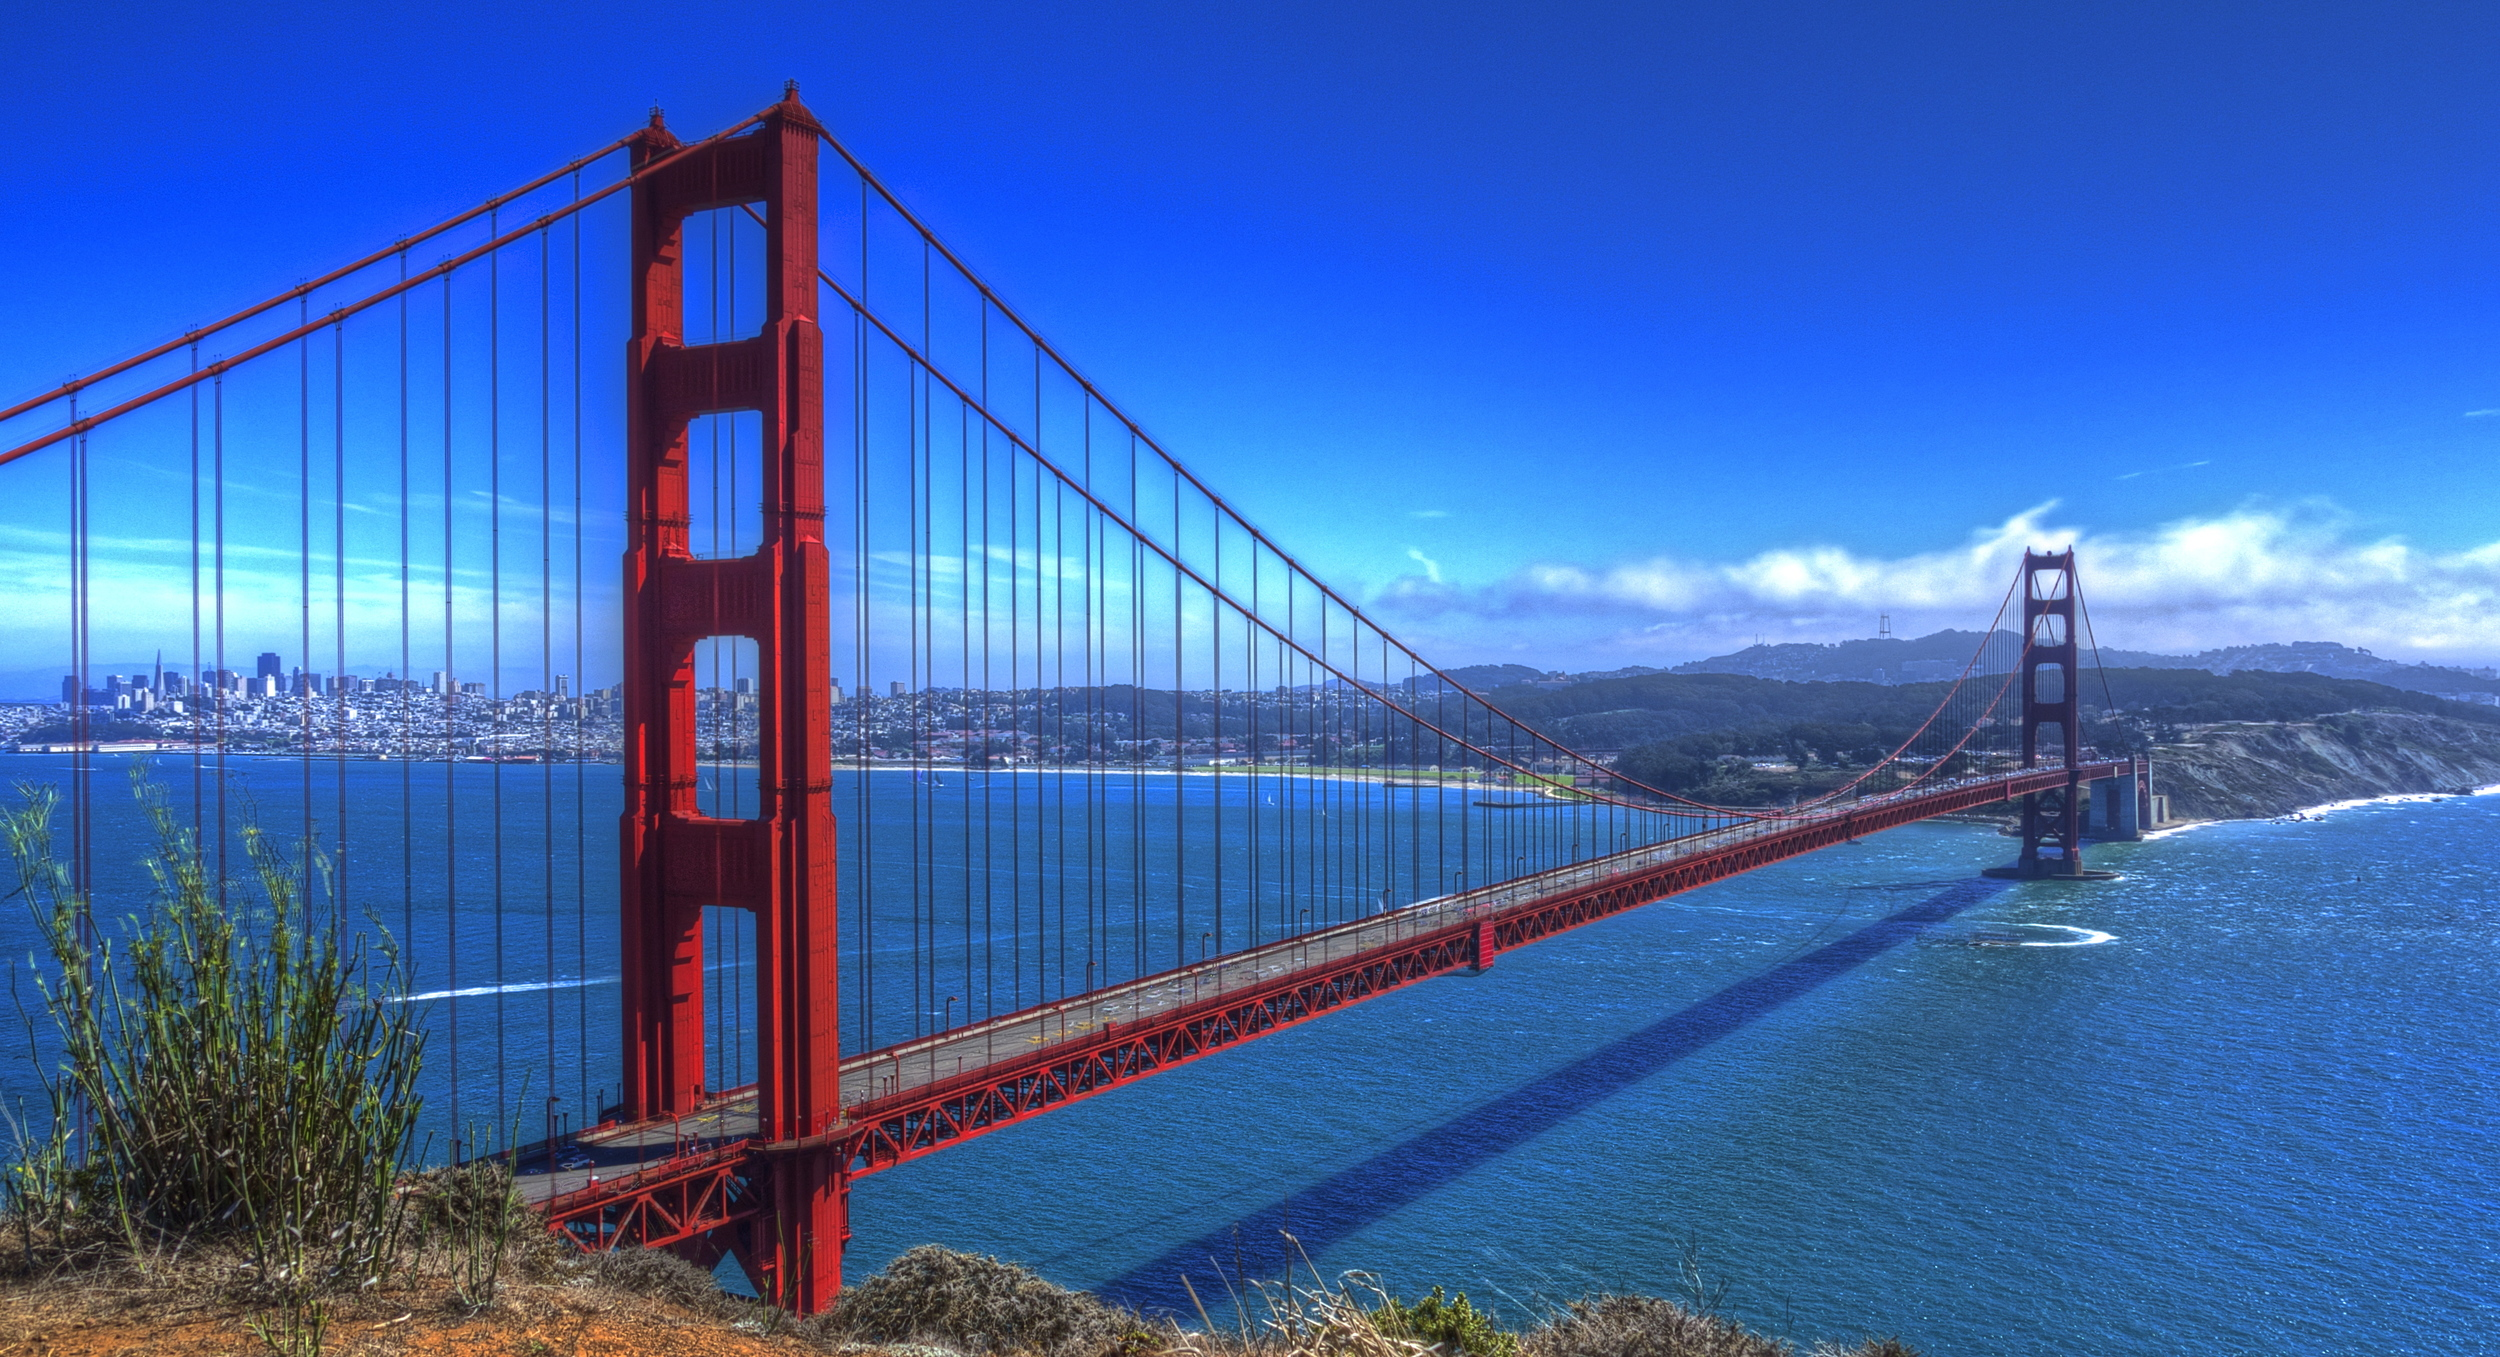 This Is My Photo Of The Golden Gate Bridge. There Are Many Like It But This One Is Mine.